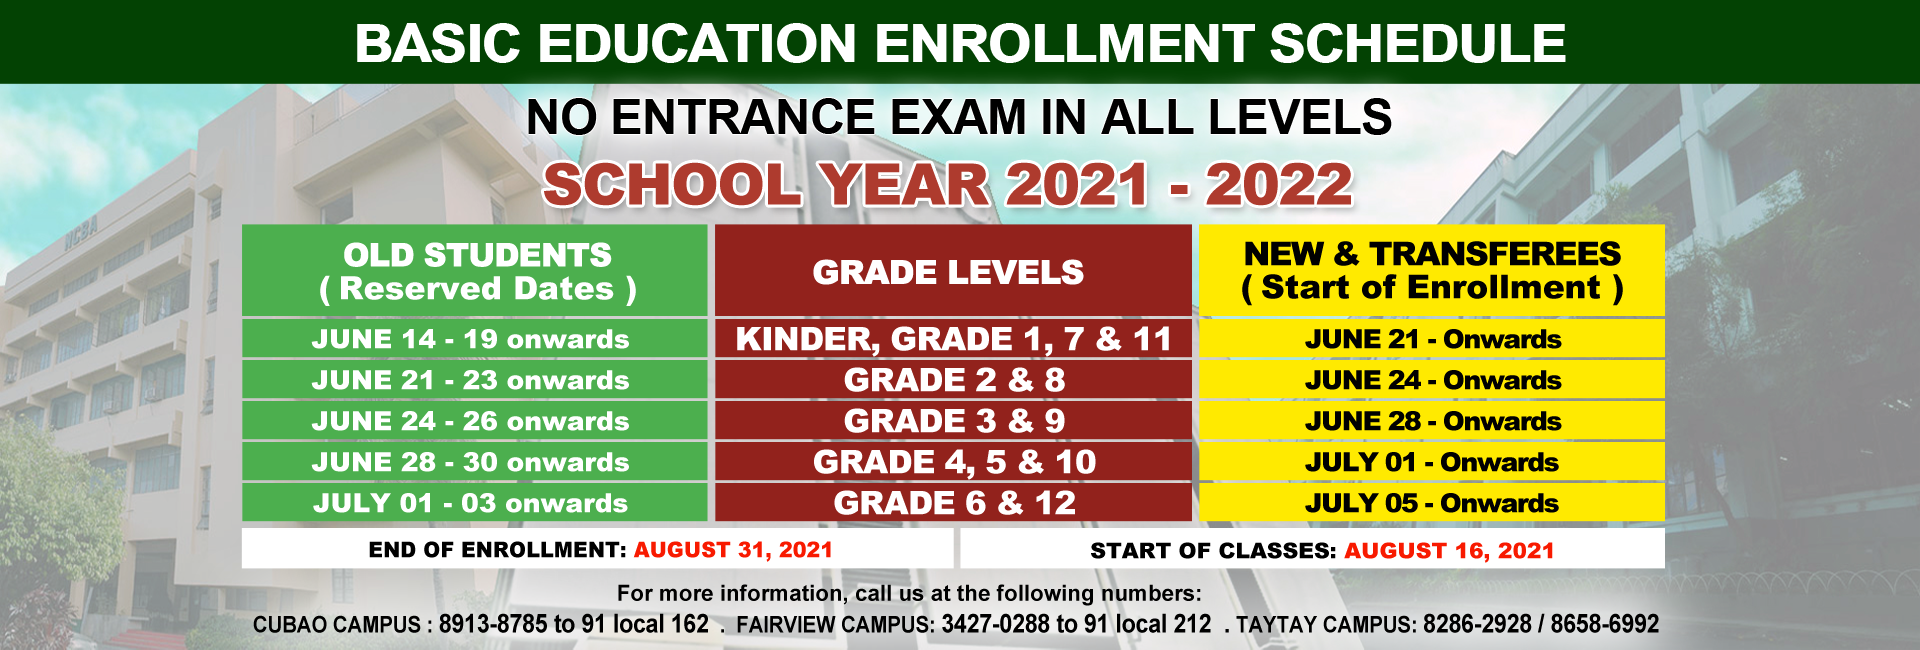 NCBA Basic Education Enrollment Schedules for SY 2021-2022